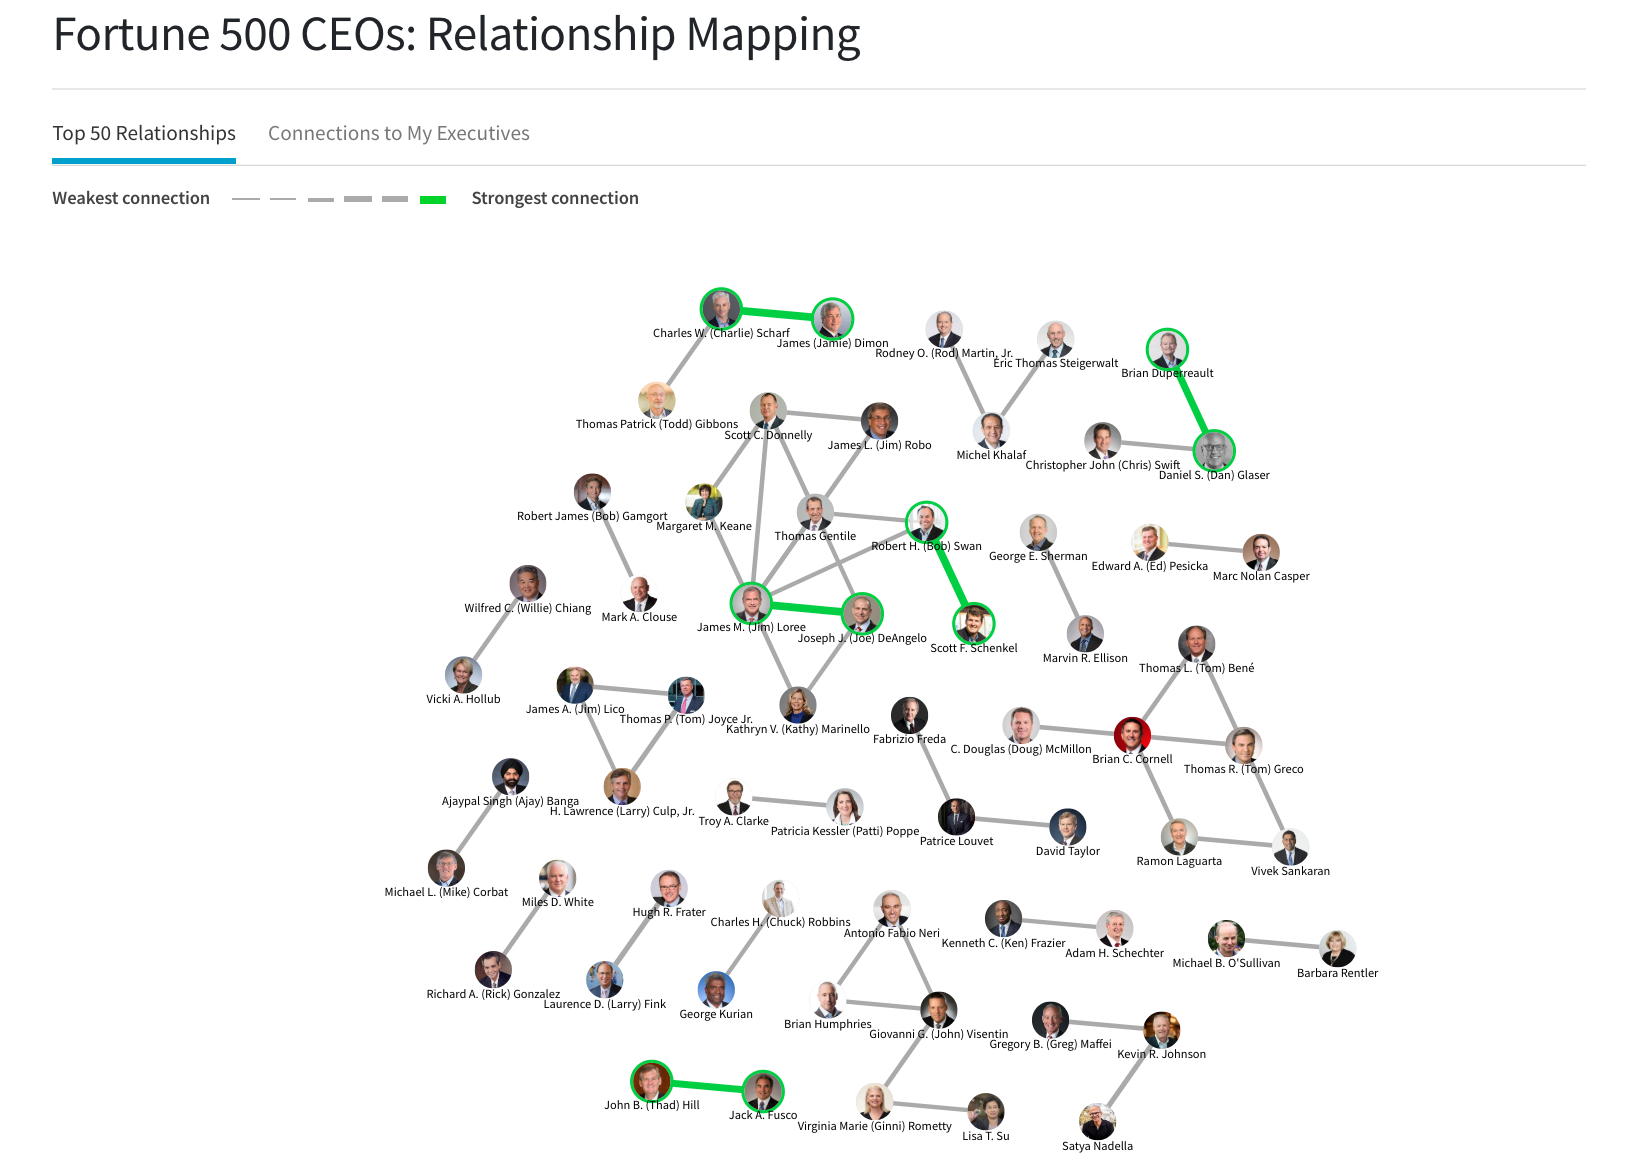 What if you could find hidden connections among executive leaders across your key accounts?